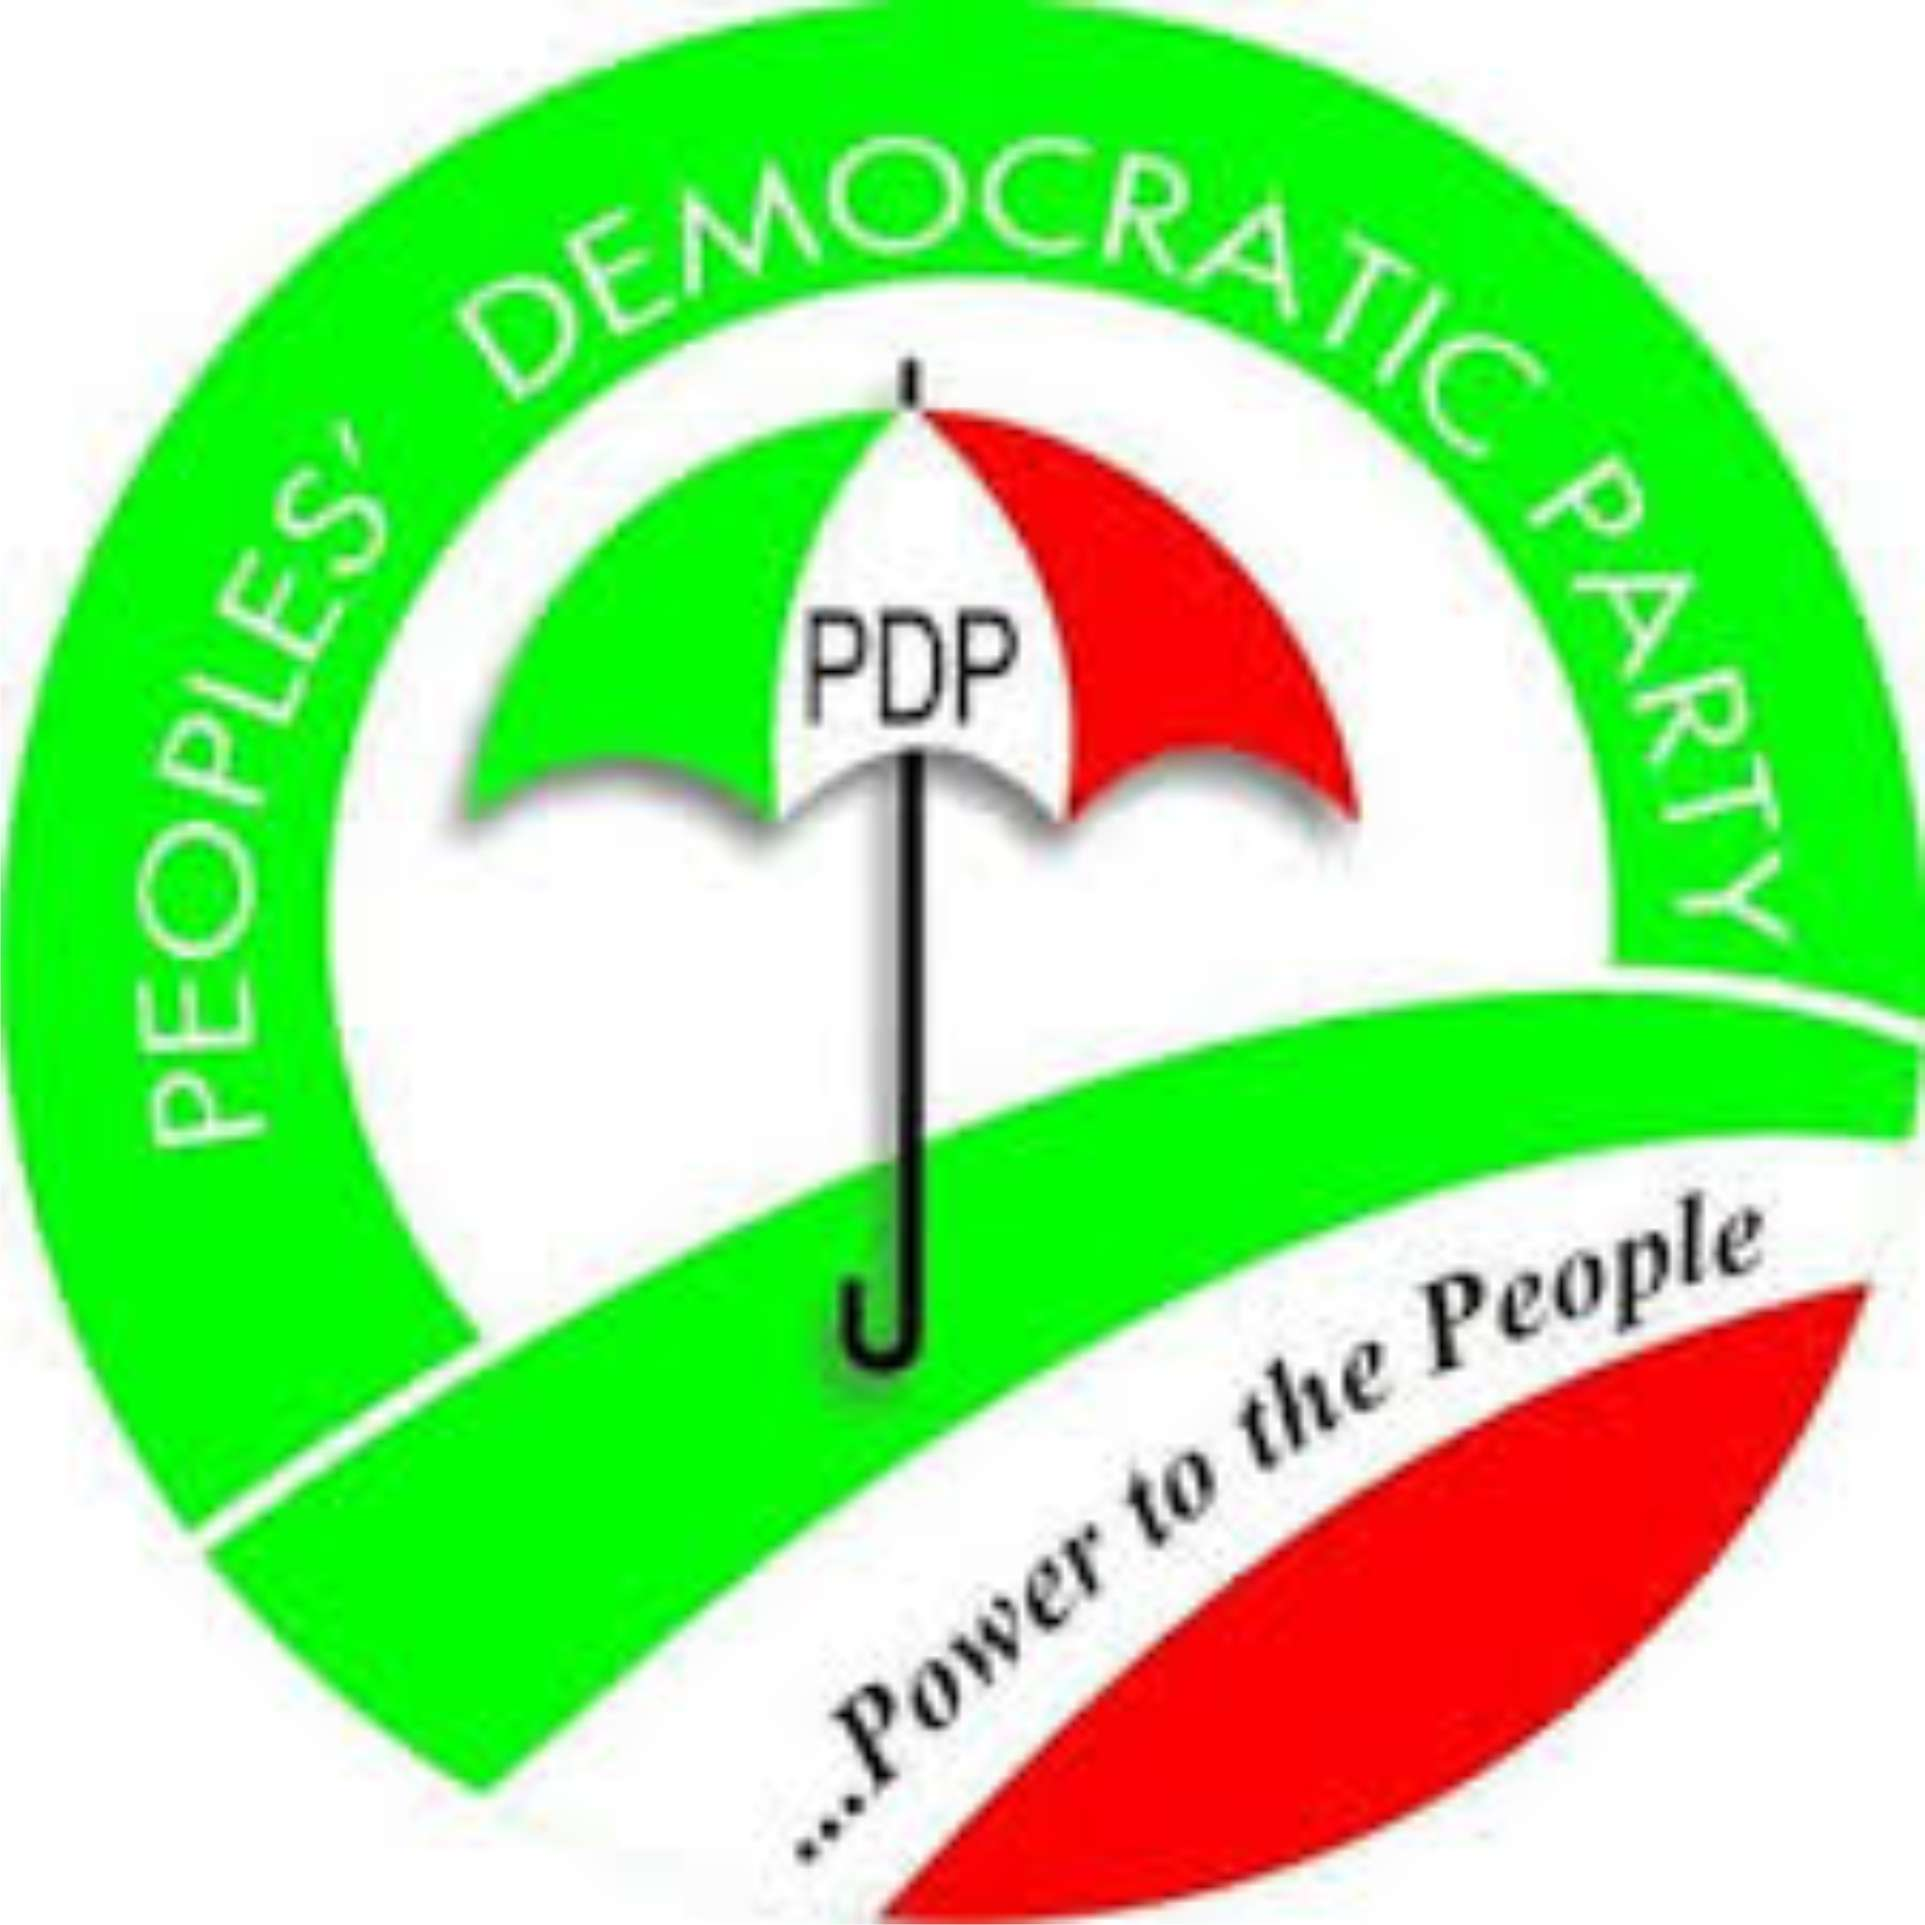 New PDP Emerges In Abuja Newswire Law And Events